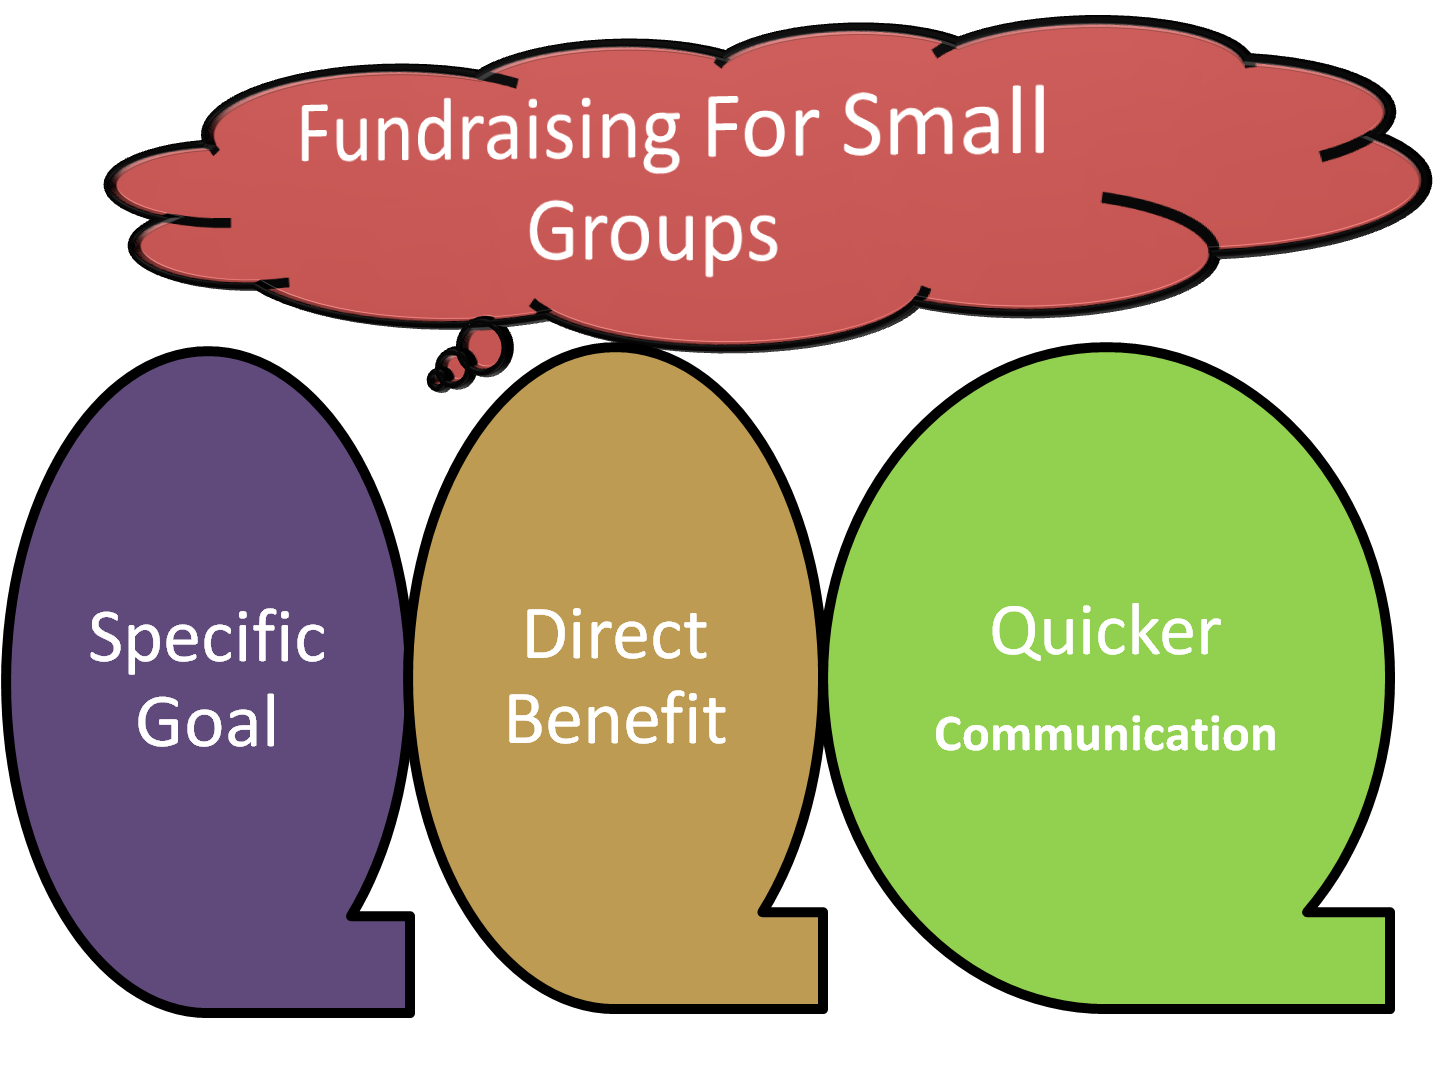 fundraising for small groups, like high school clubs, sports groups